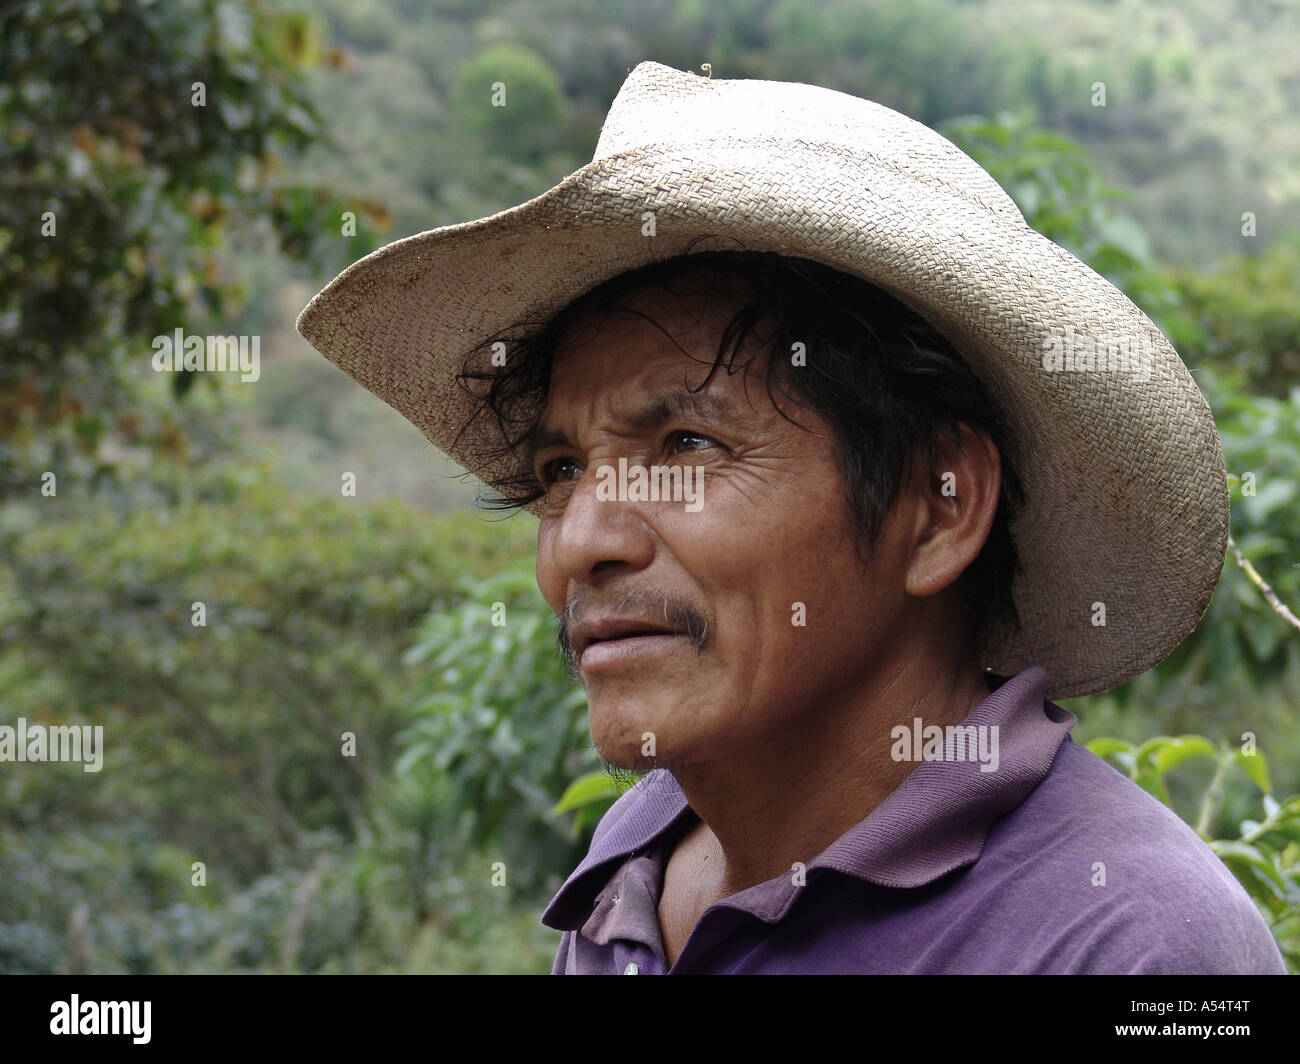 Painet ip1927 honduras farmer marcala country developing nation less  economically developed culture emerging market minority 31bf1a6b4c3